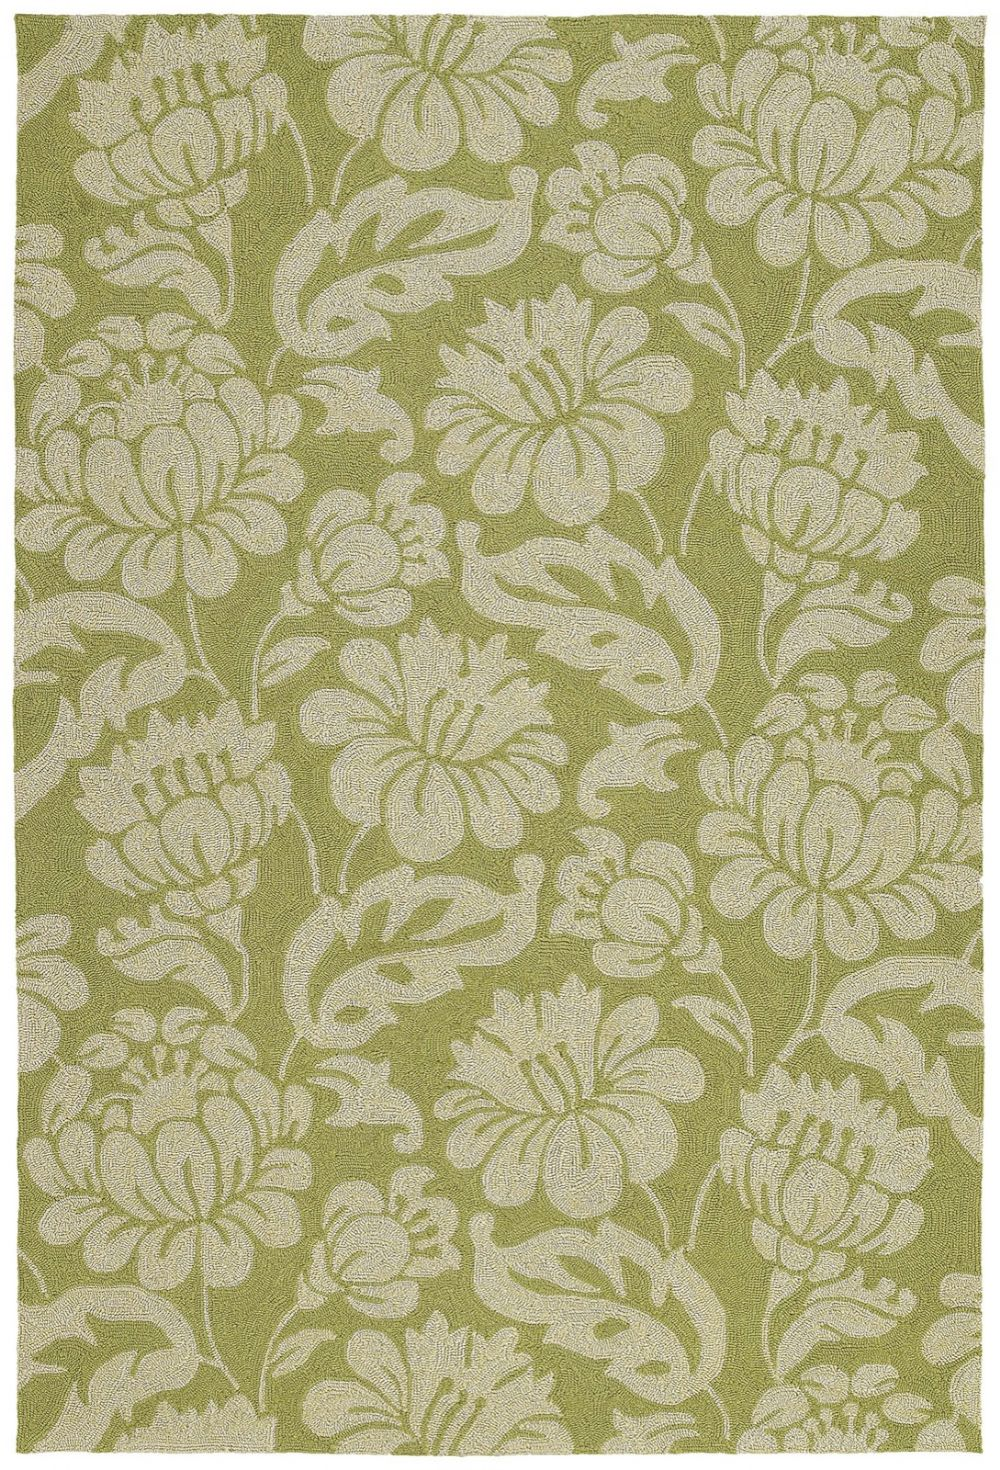 kaleen habitat country & floral area rug collection